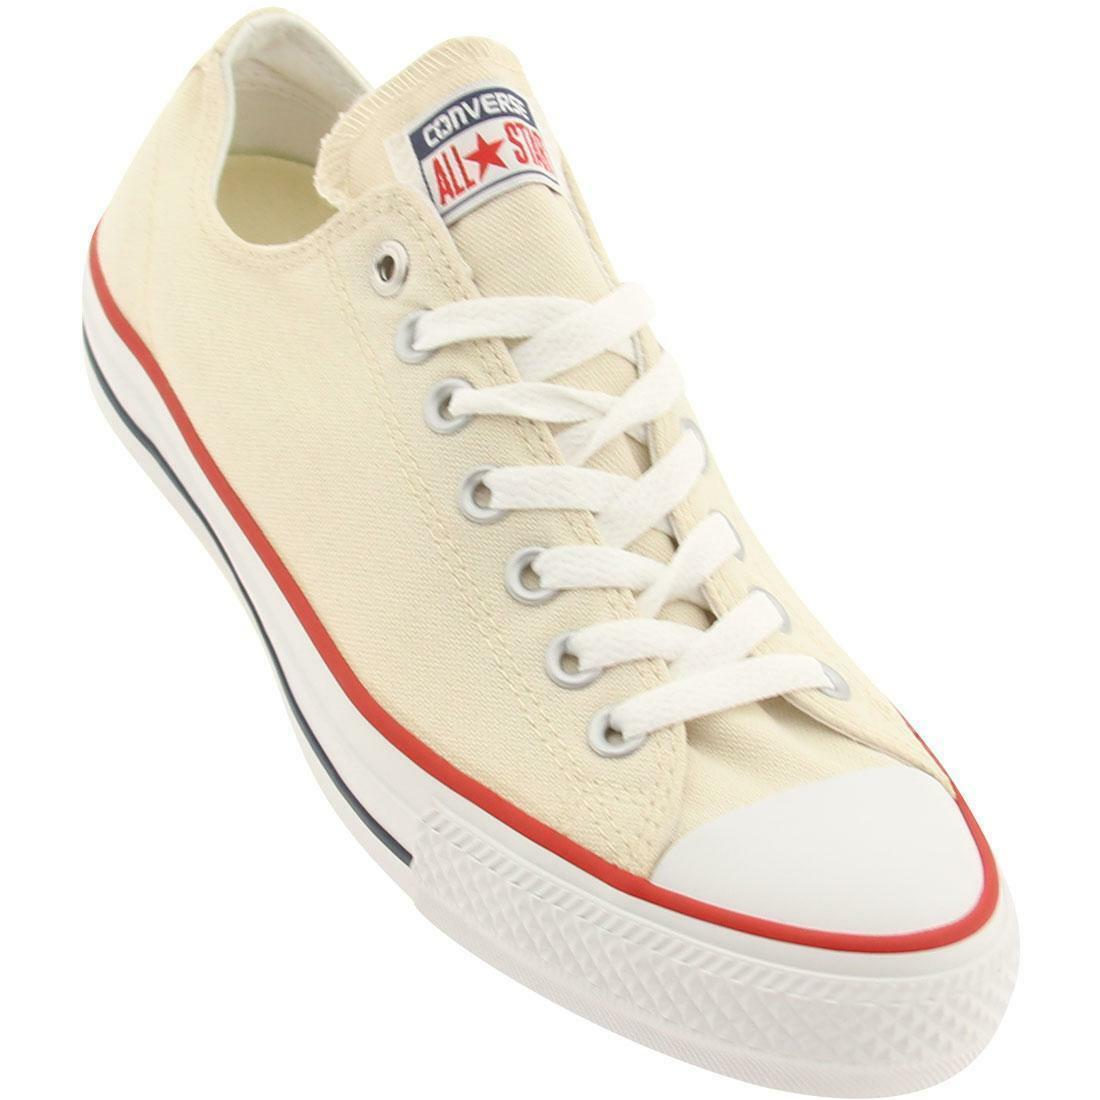 CONVERSE ALL STAR CHUCK TAYLOR PRO OX LOW MEN chaussures BEIGE 142765C Taille 12 NEW